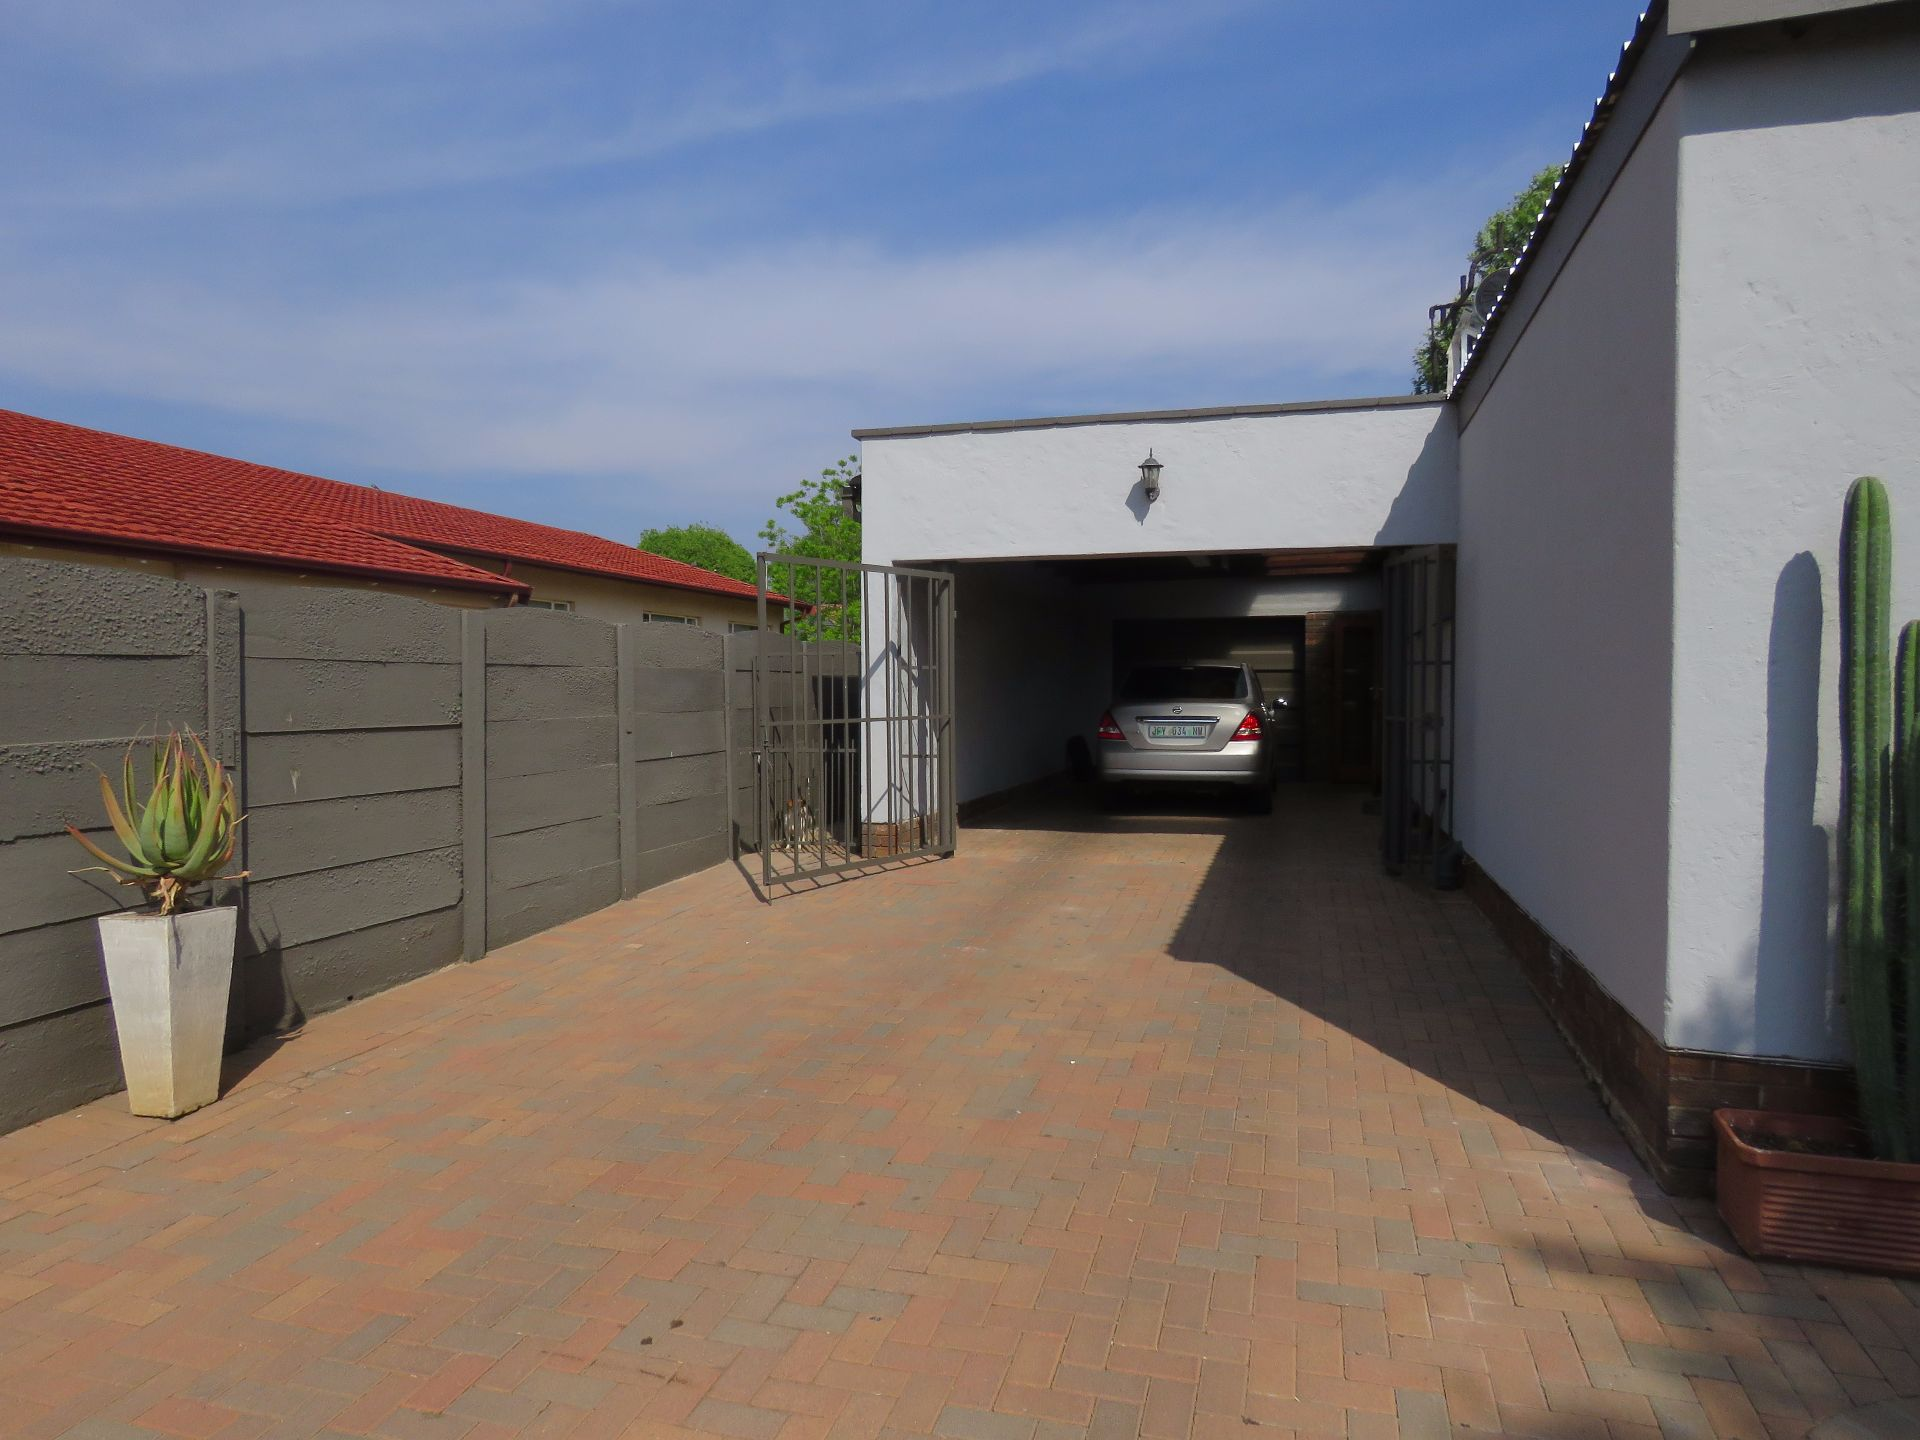 Potchefstroom Central property for sale. Ref No: 13543908. Picture no 3